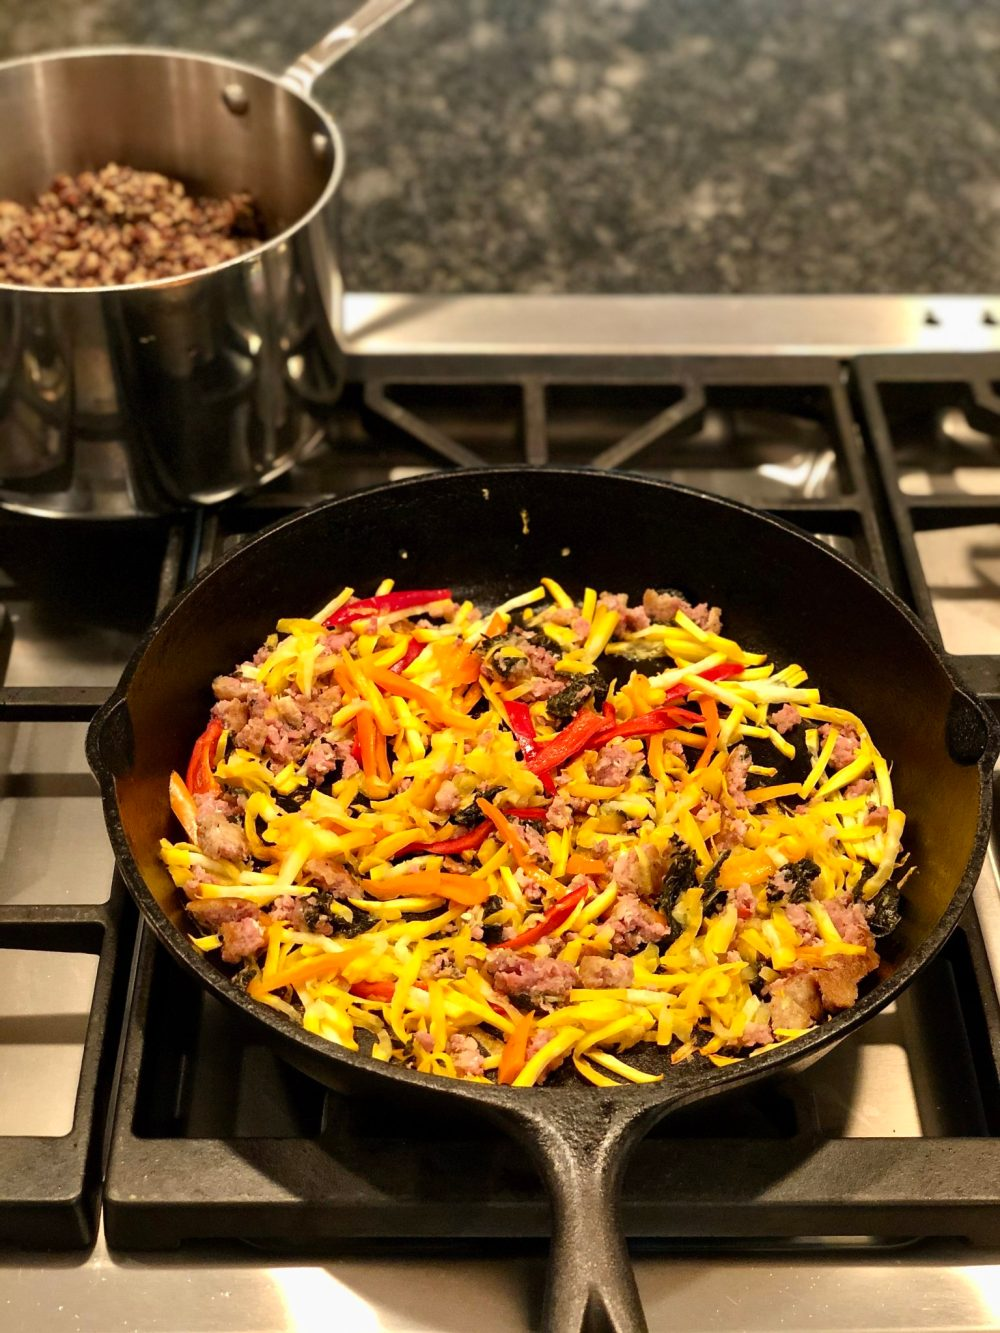 The addition of two flavorful proteins to a hearty dose of colorful vegetables makes this easy, one-pan meal a family favorite in our house. The recipe's inherent flexibility makes it ideal for using what you have on hand.